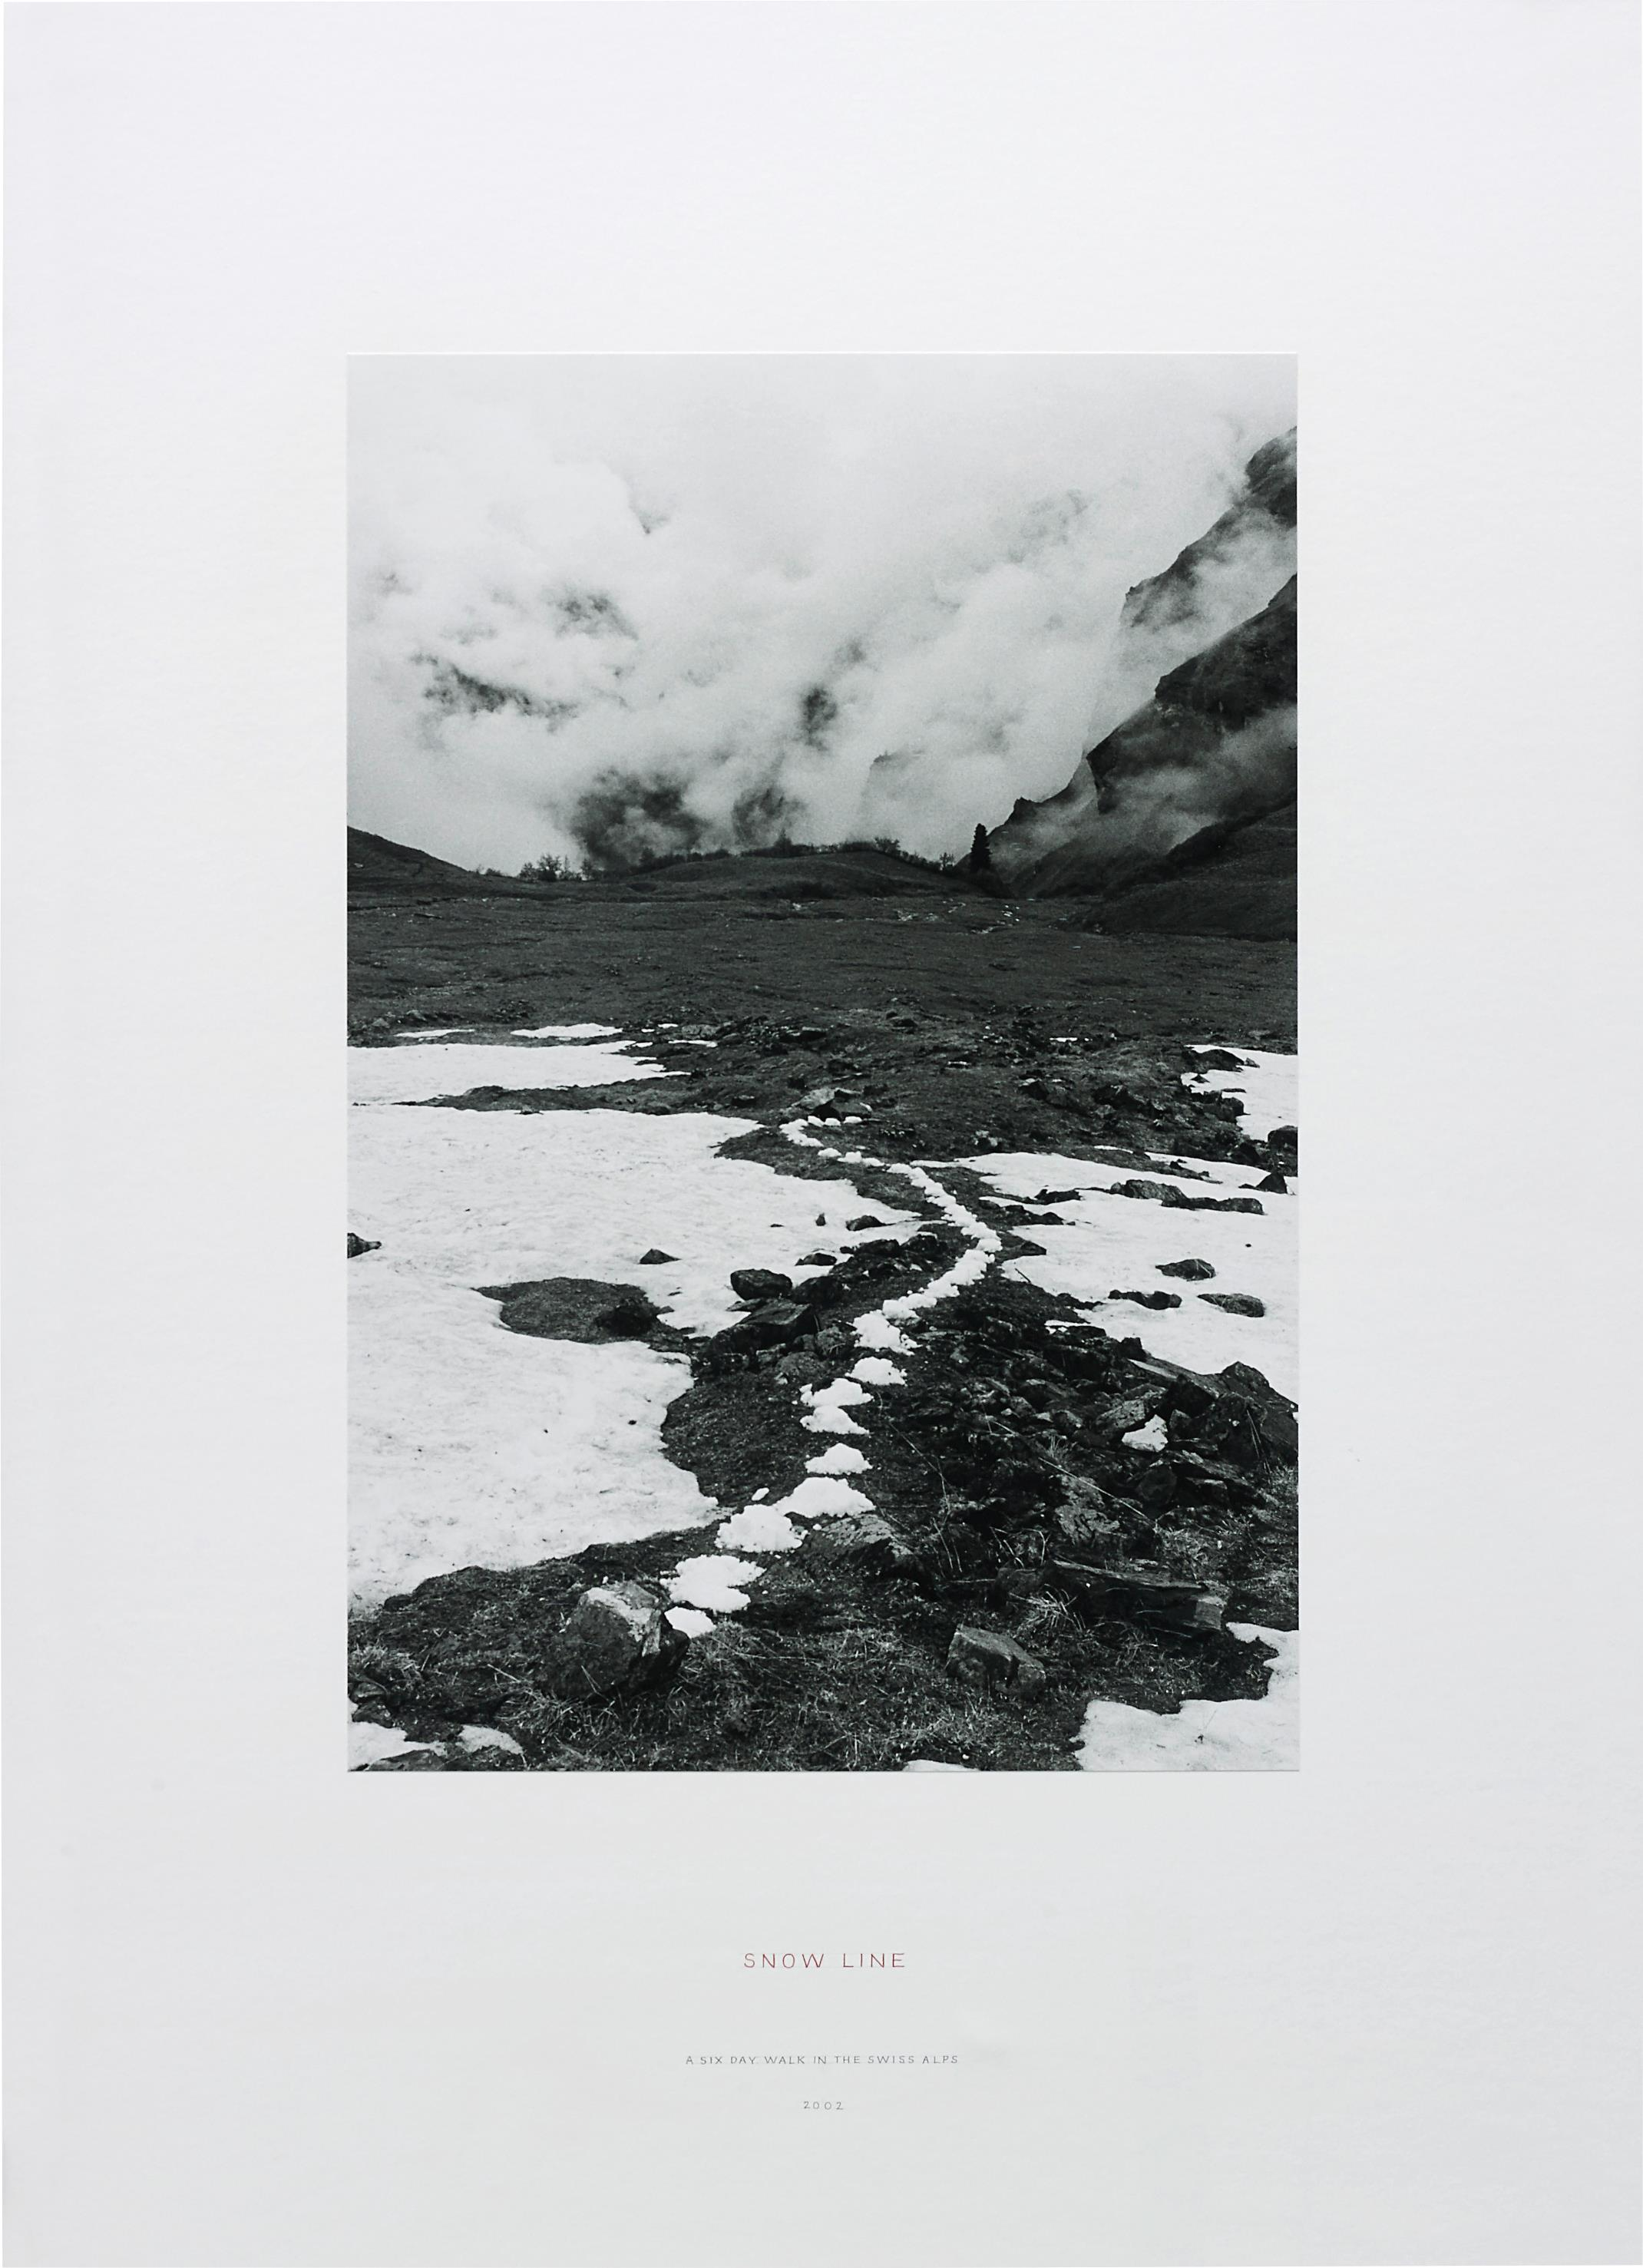 Richard Long-Snow Line (A Six Day Walk In The Swiss Alps)-2002